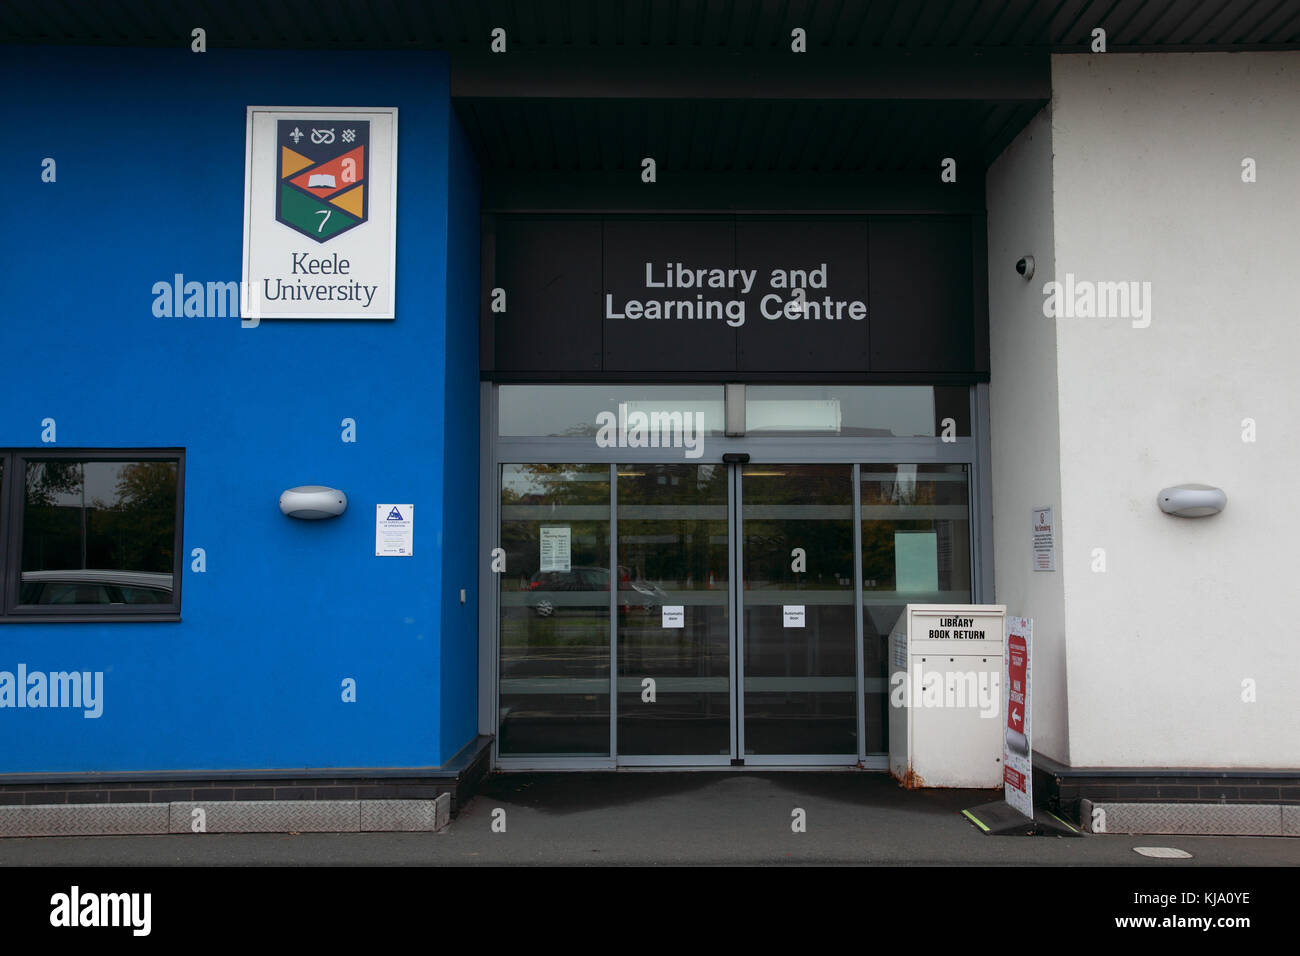 The Keele University Library and Learning Centre at the NHS Royal Shrewsbury Hospital, a teaching hospital - Stock Image